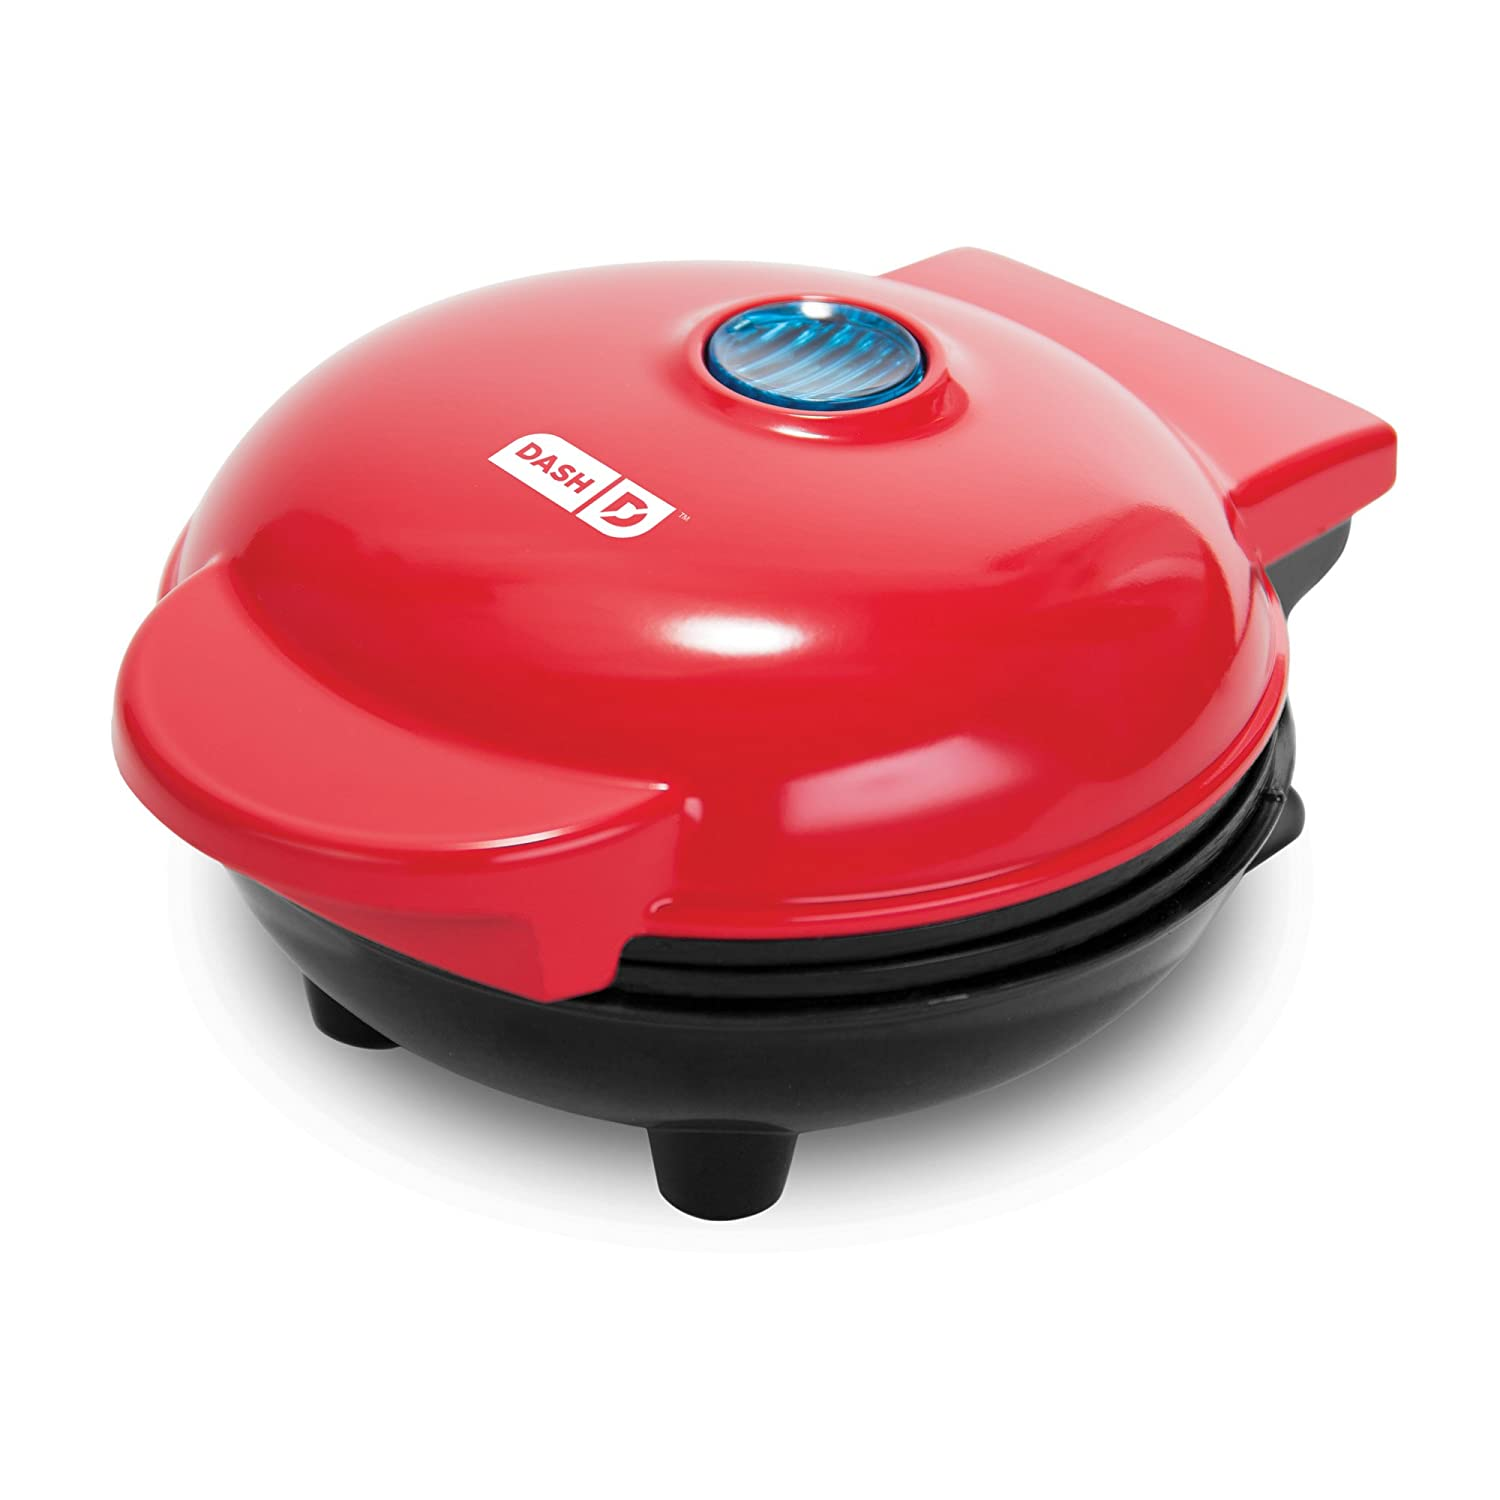 Dash DMS001RD Mini Maker Electric Round Griddle for Individual Pancakes, Cookies, Eggs & other on the go Breakfast, Lunch & Snacks with Indicator Light + Included Recipe- Red